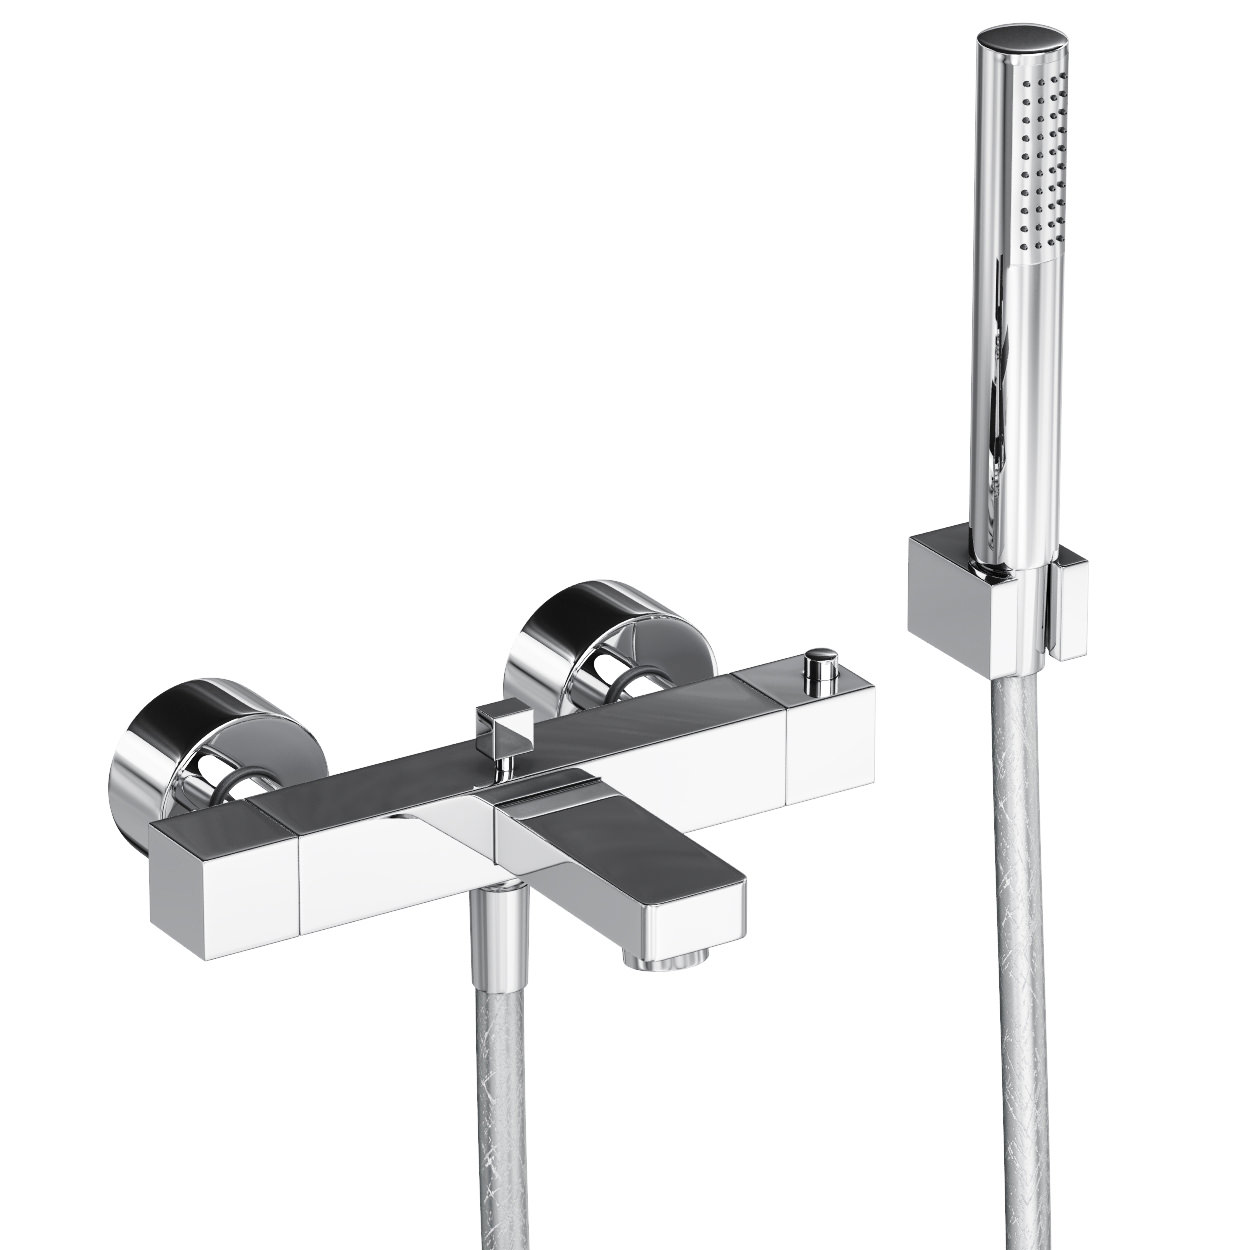 Abode Fervour Thermostatic Wall Mounted Bath Shower Mixer Tap | AB1247